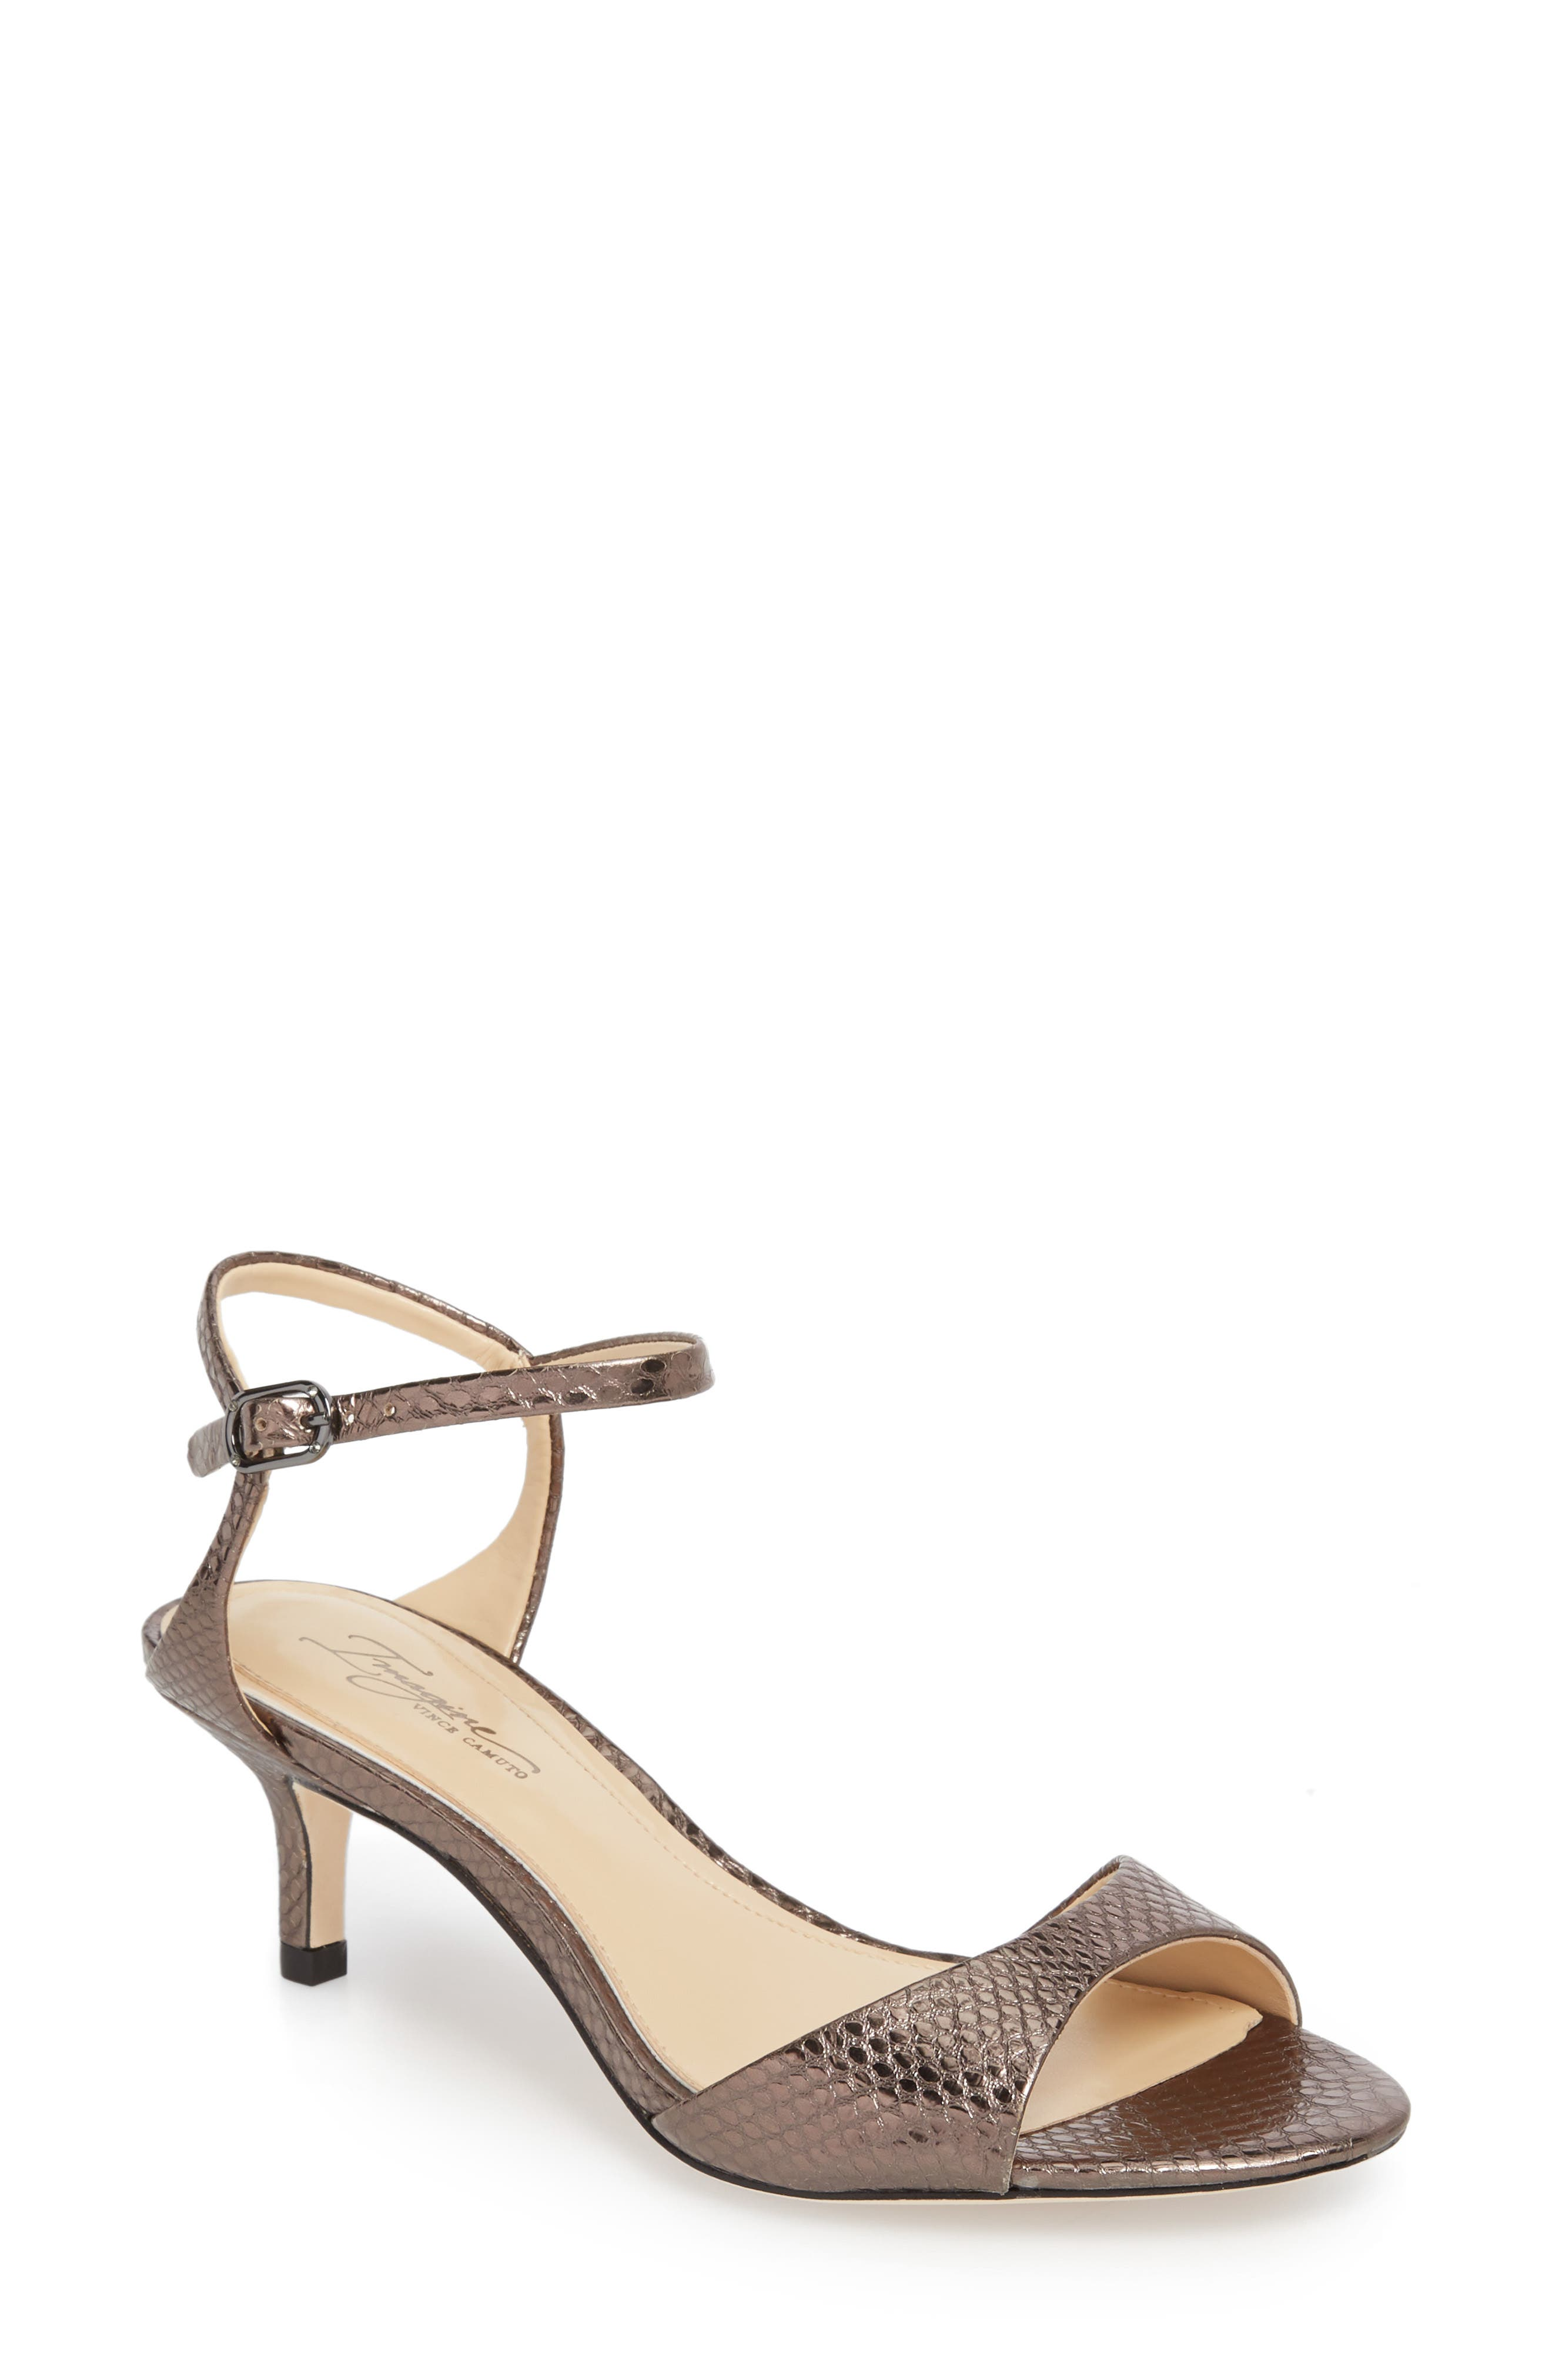 Imagine By Vince Camuto Kymberly Sandal, Grey